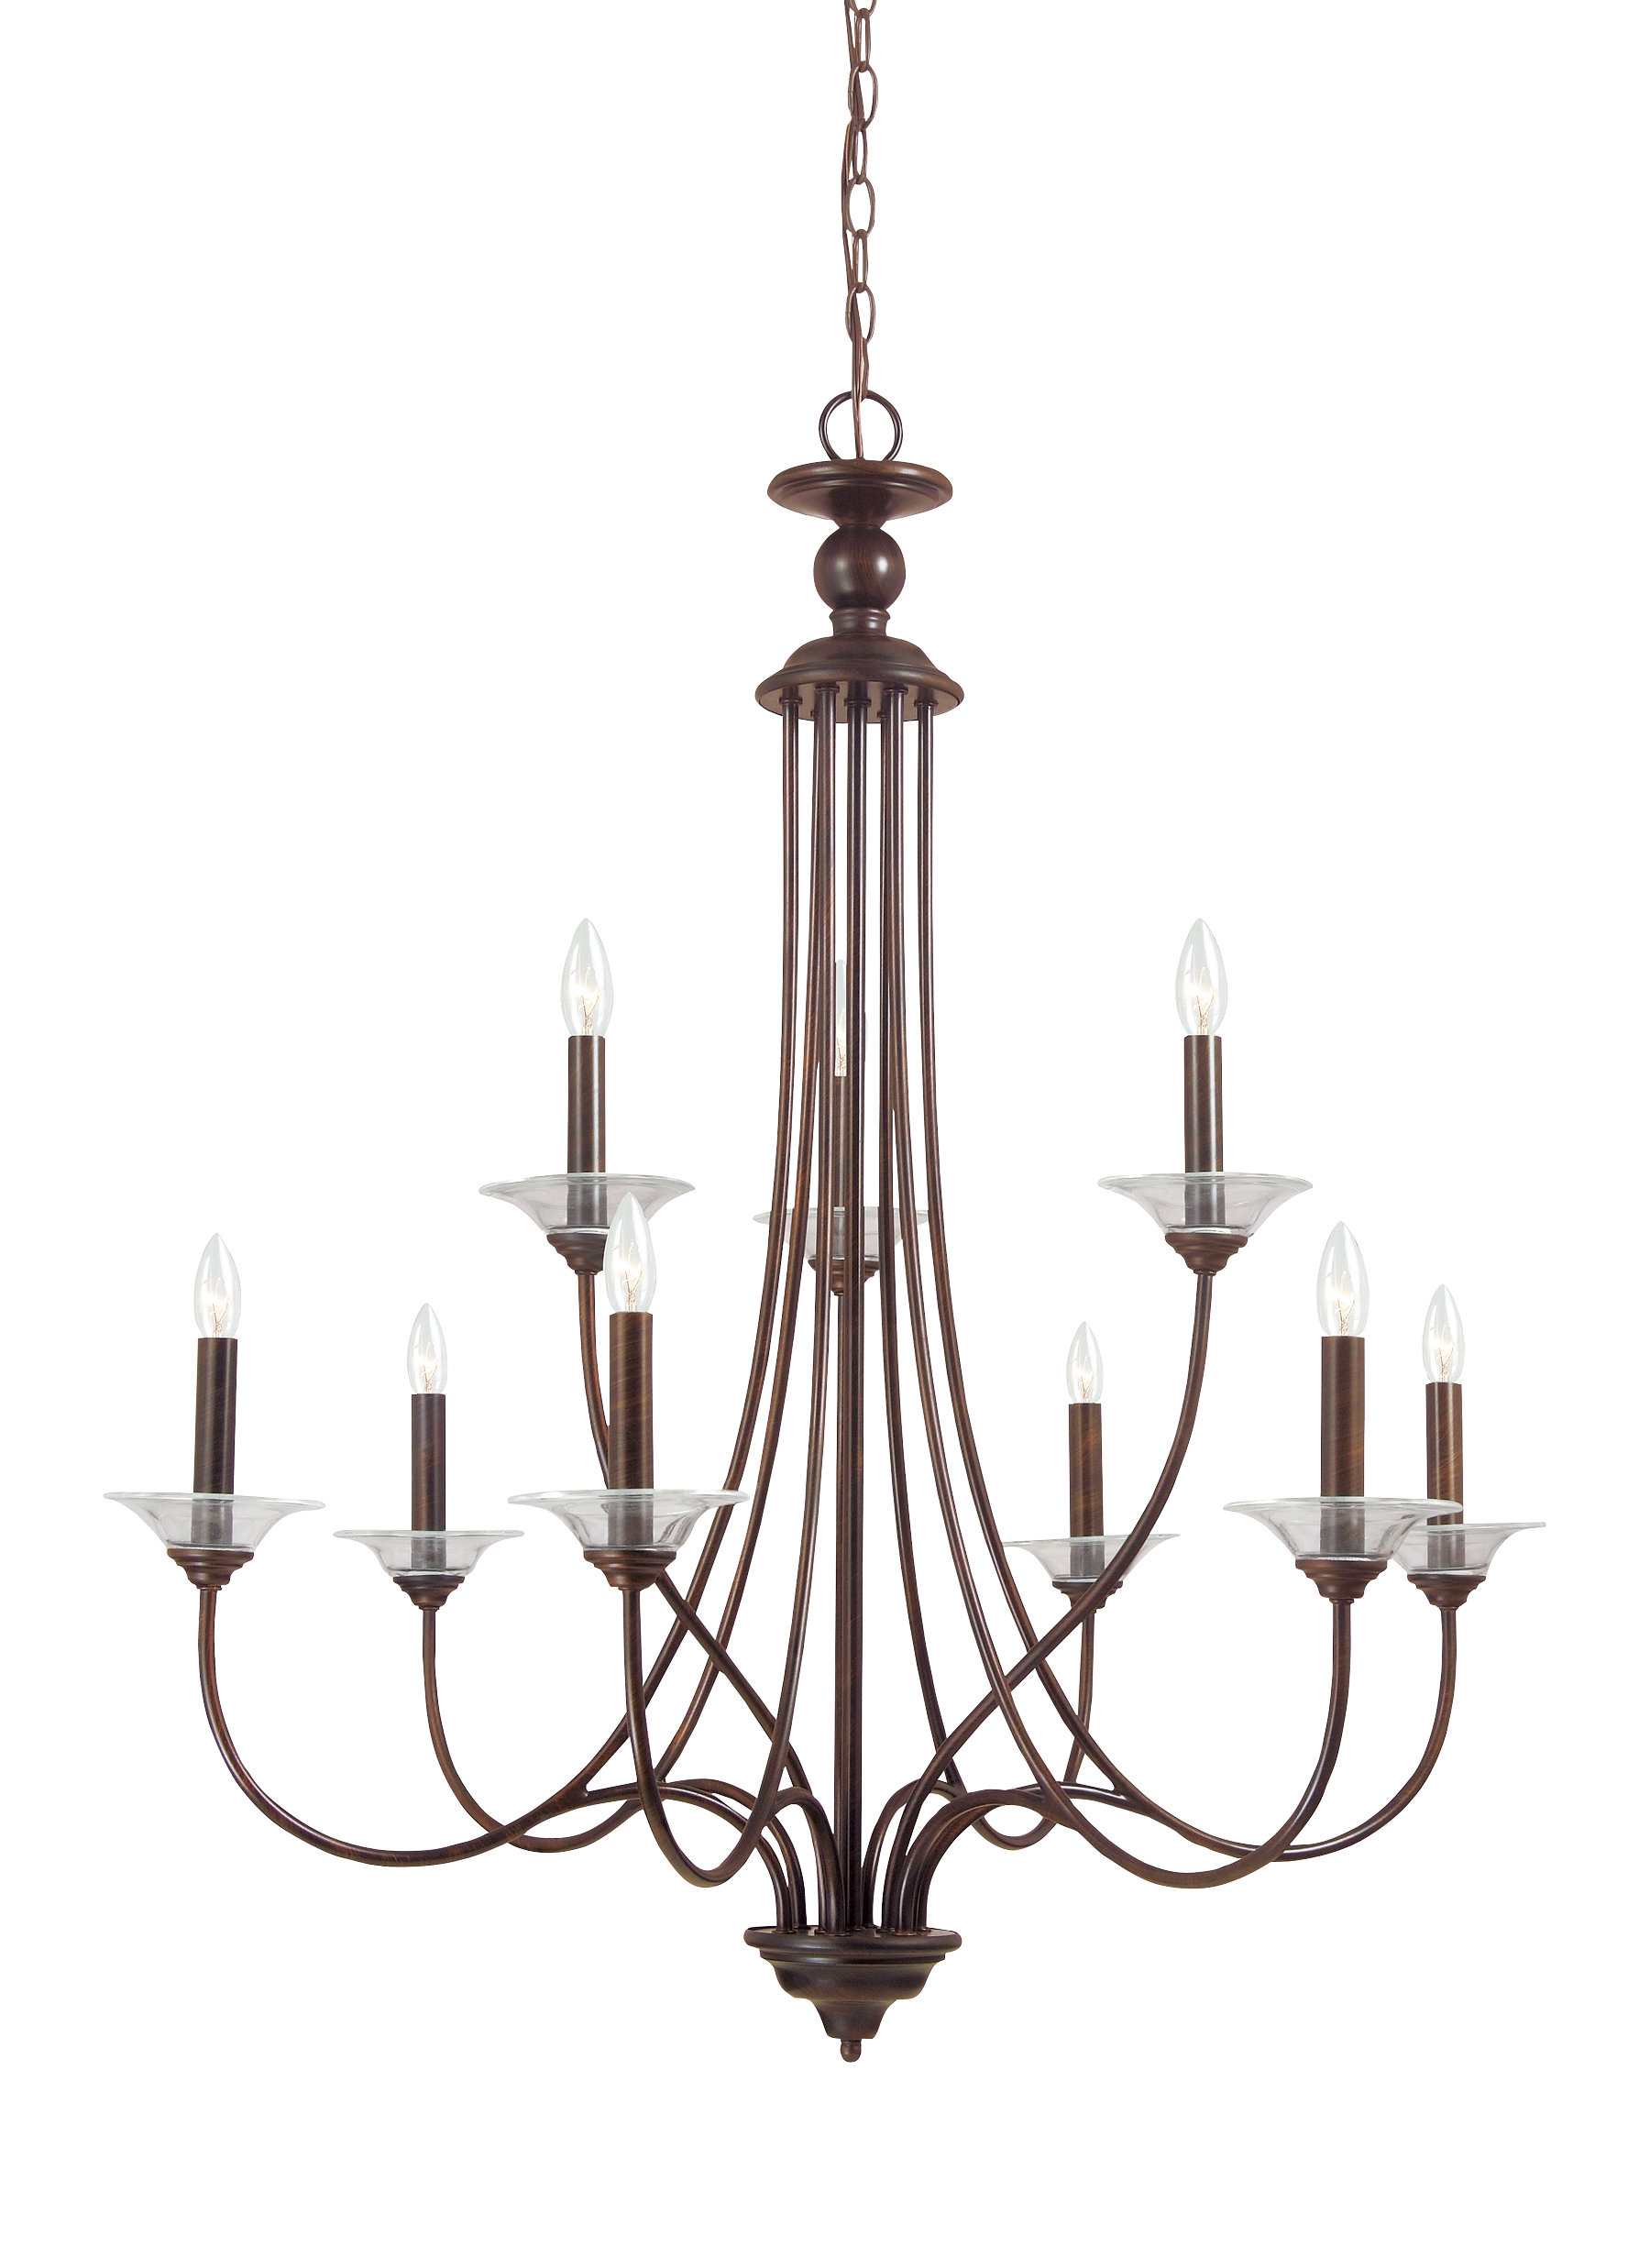 Latest Barbro 9 Light Chandelier For Watford 9 Light Candle Style Chandeliers (View 16 of 25)